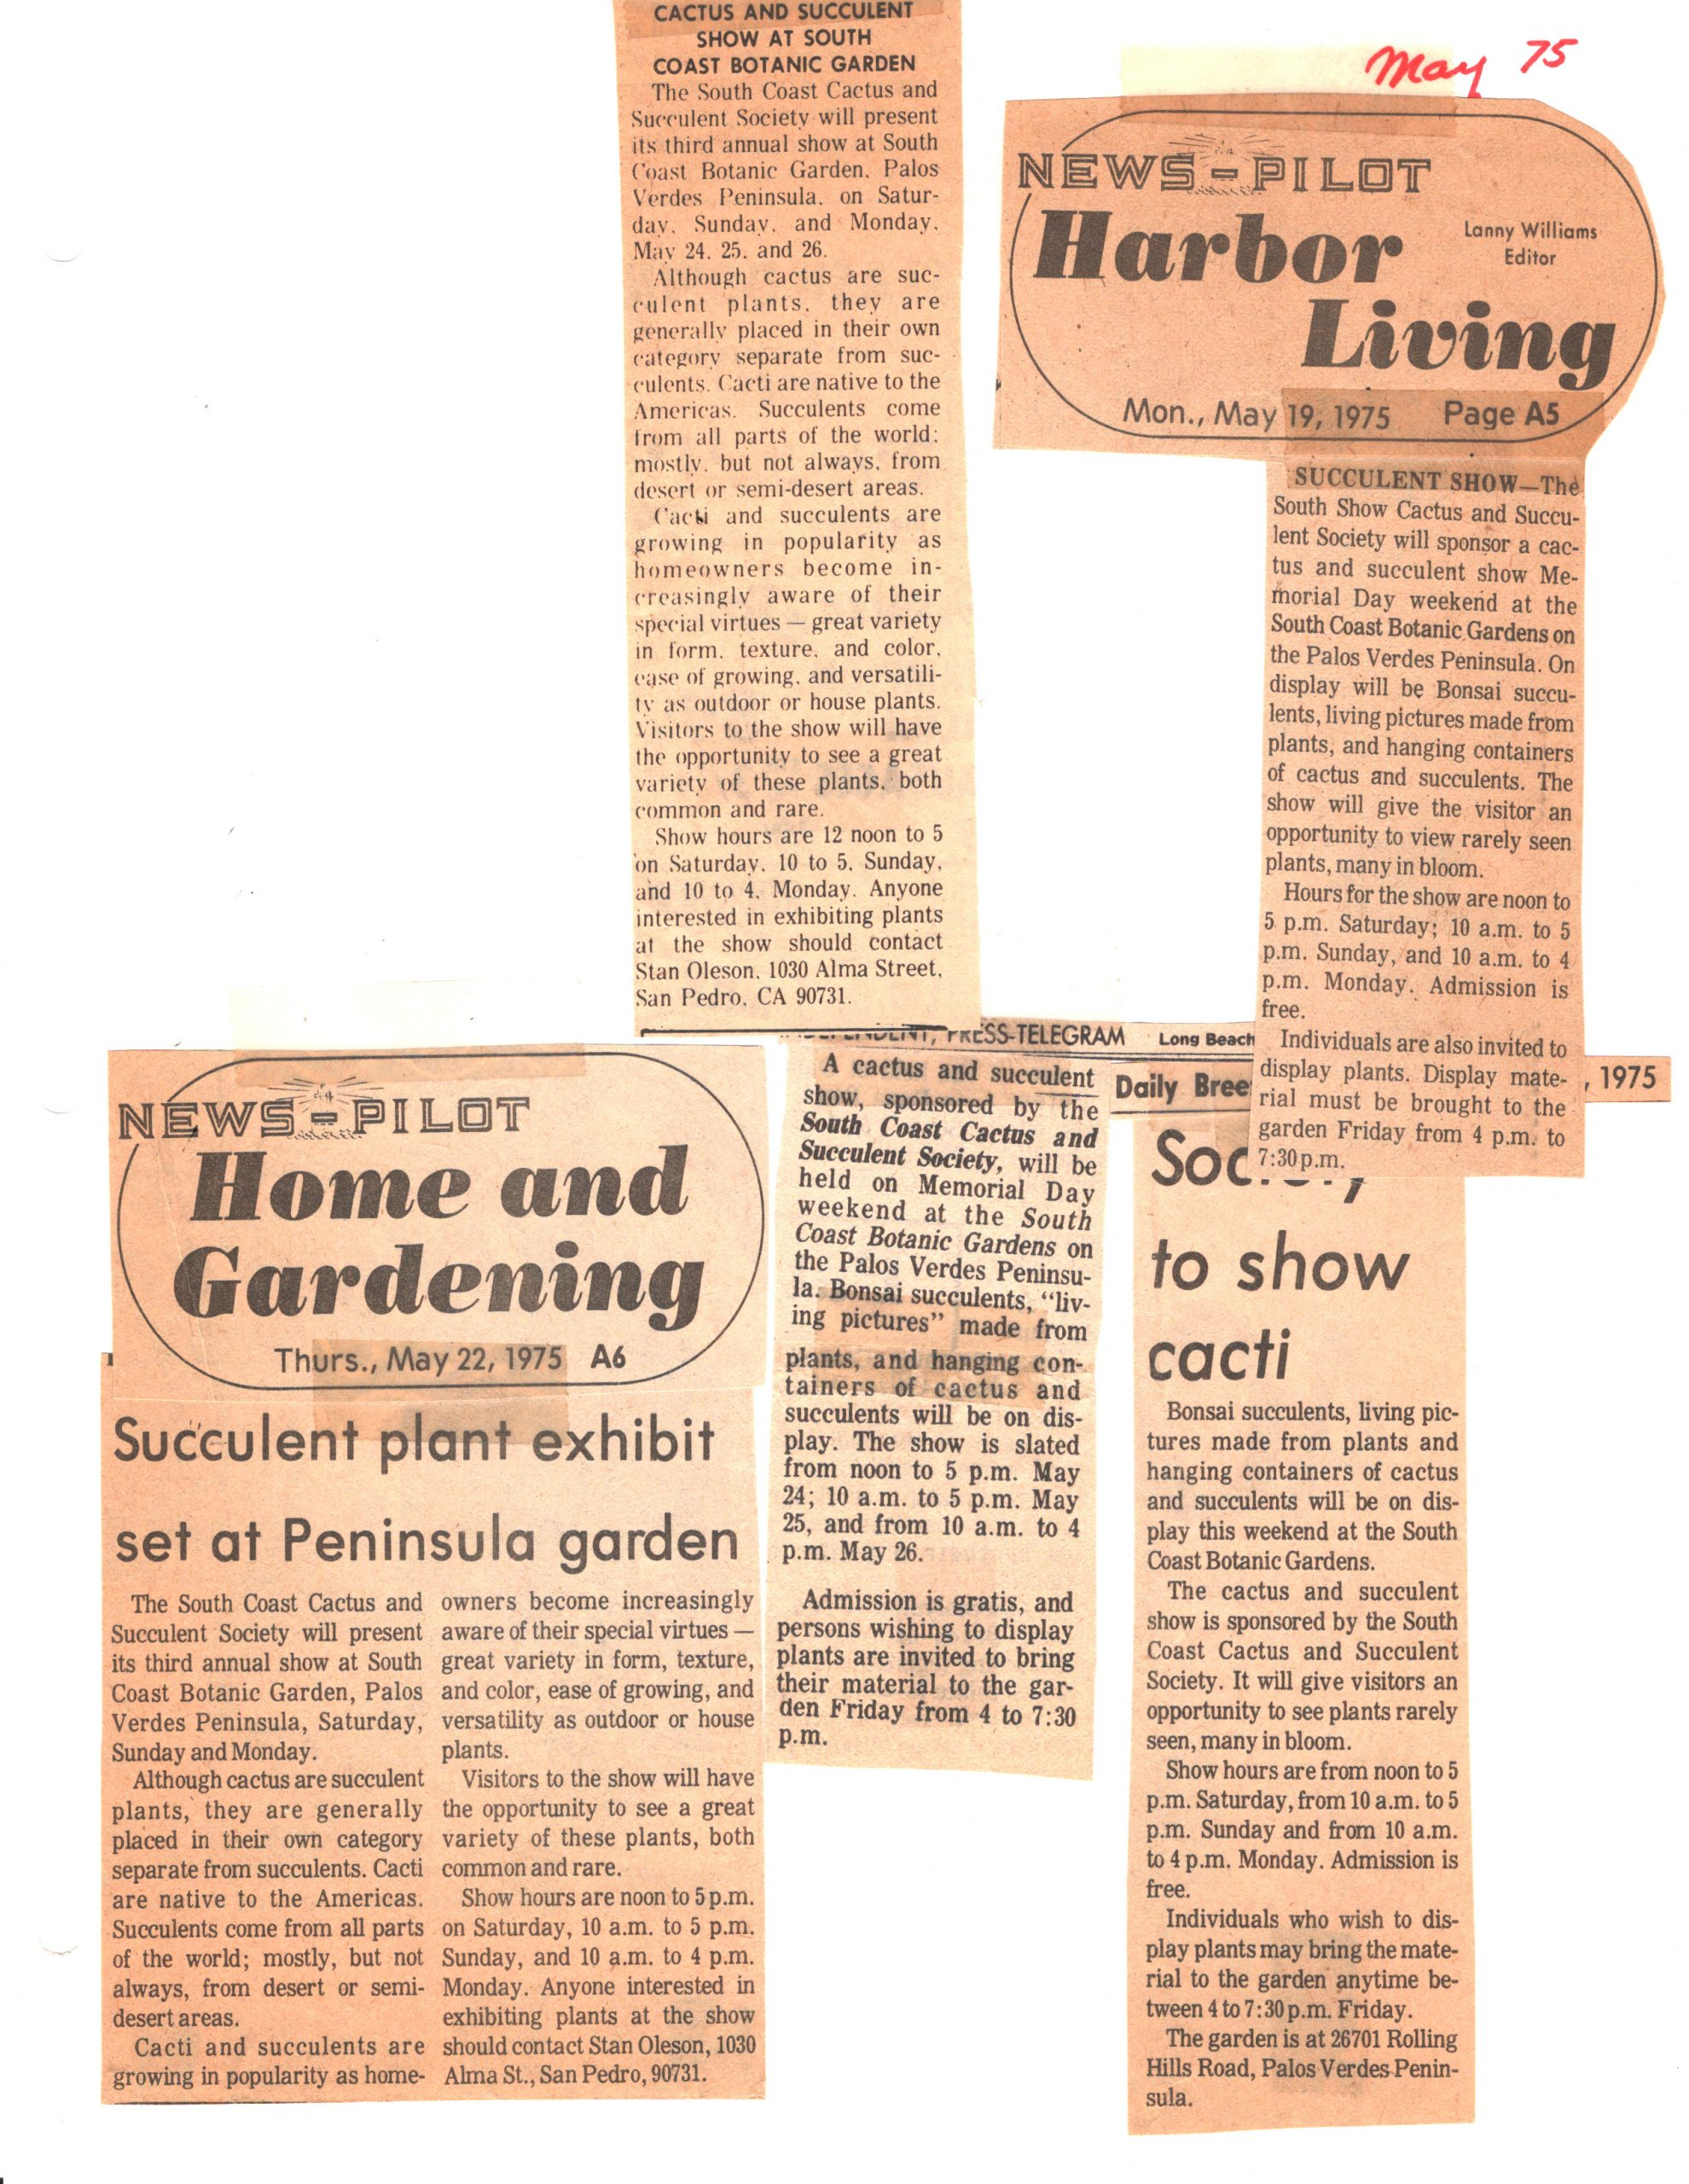 SCCSS-Cuttings-1975-05-19